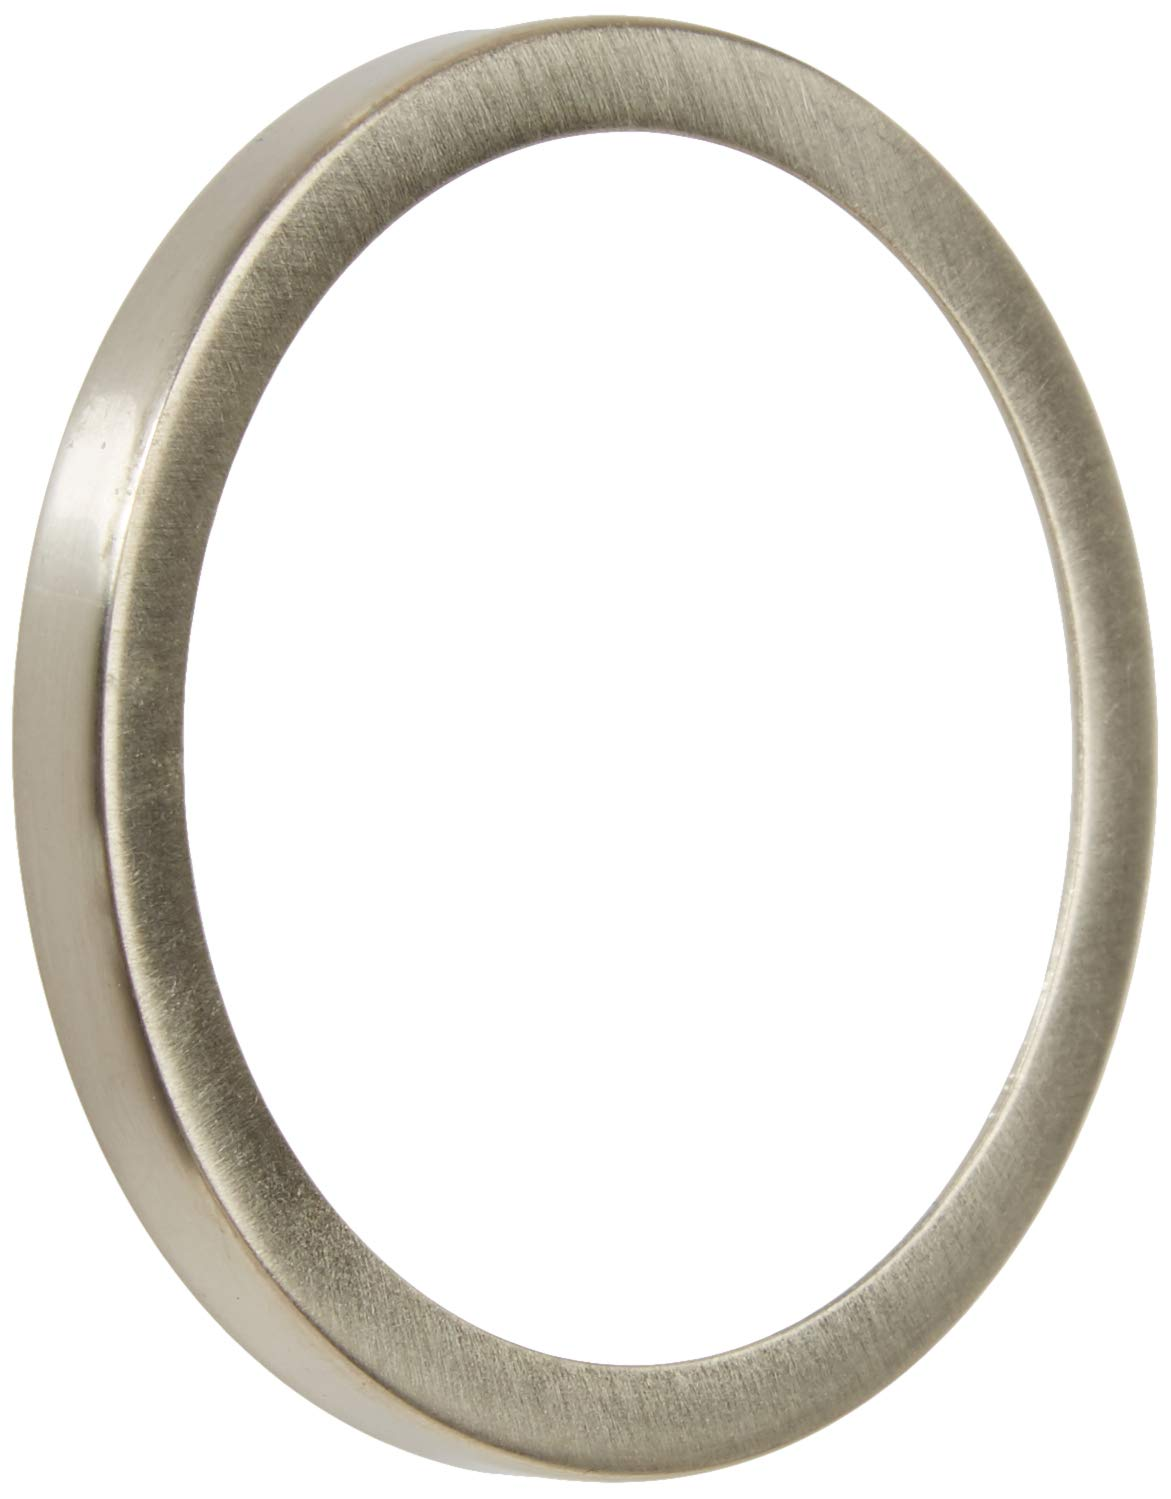 American Standard M909320-2950A Replacement Spout Flange Brushed Nickel